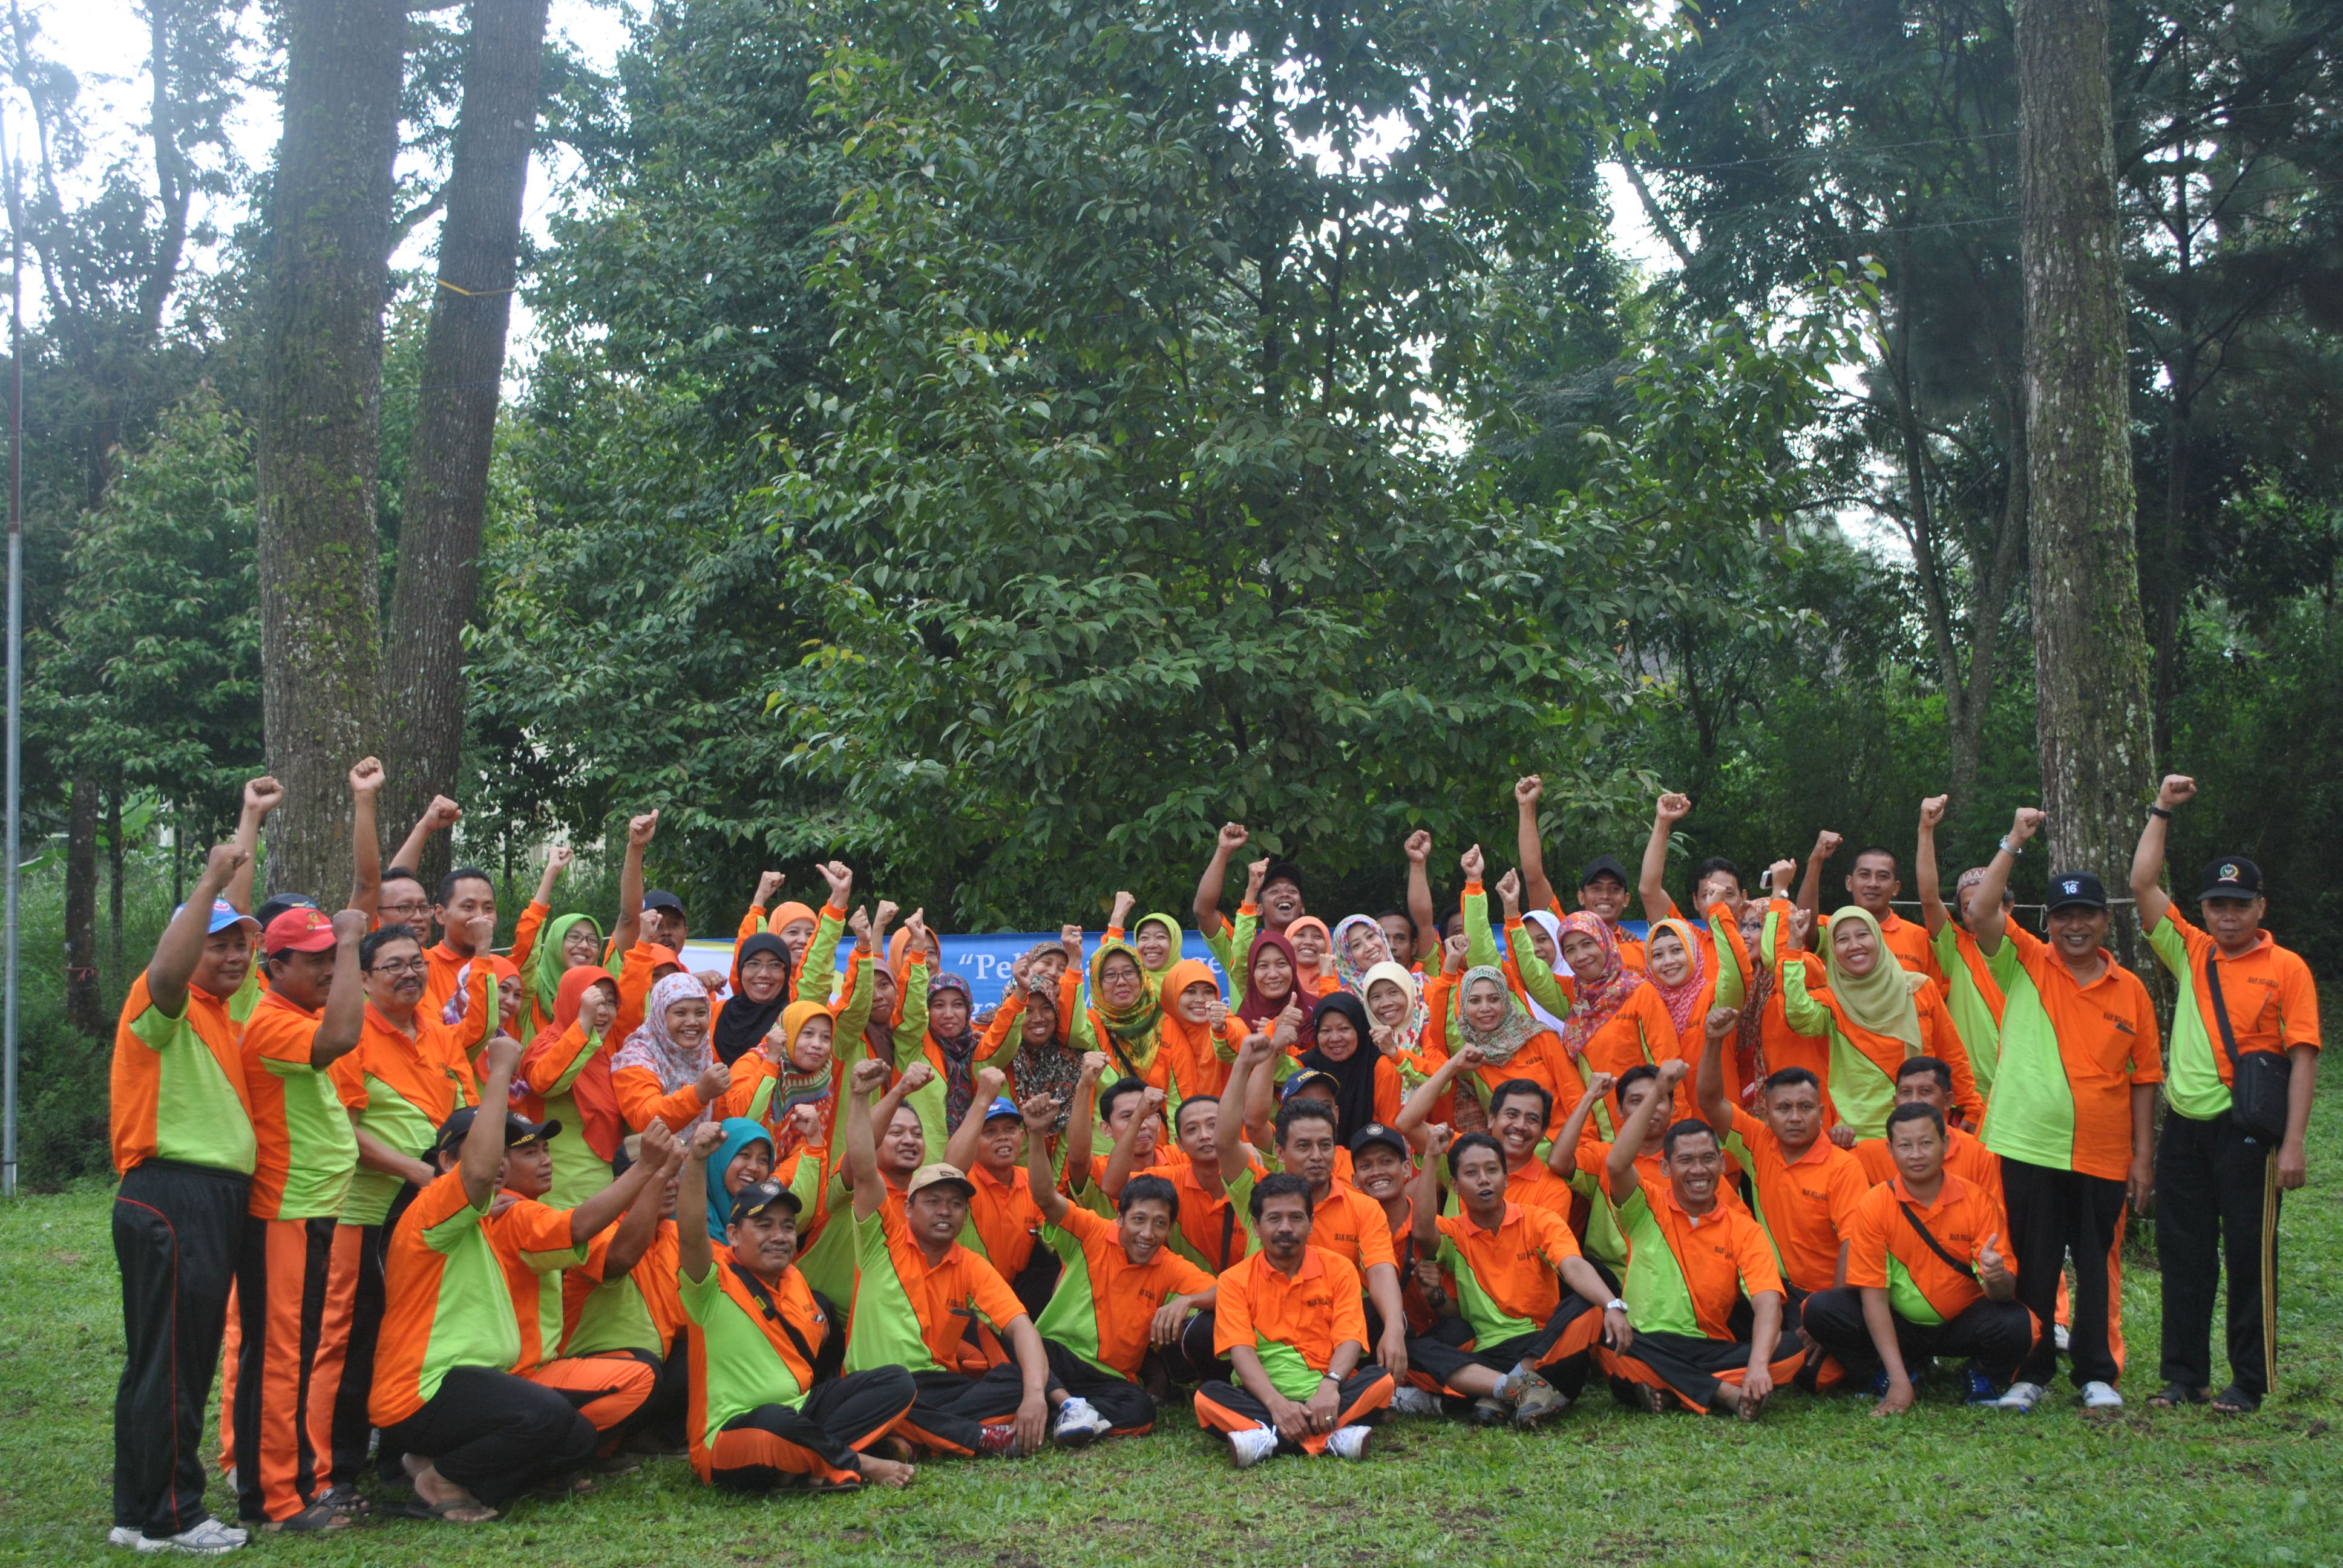 theoutbound, outboundliving, outbound malang, outbound jatim, outbound malang jatim, provider malang, provider jatim, tarining motivasi, training malang, training jatim, kegiatan outing, outing malang, outing jatim,